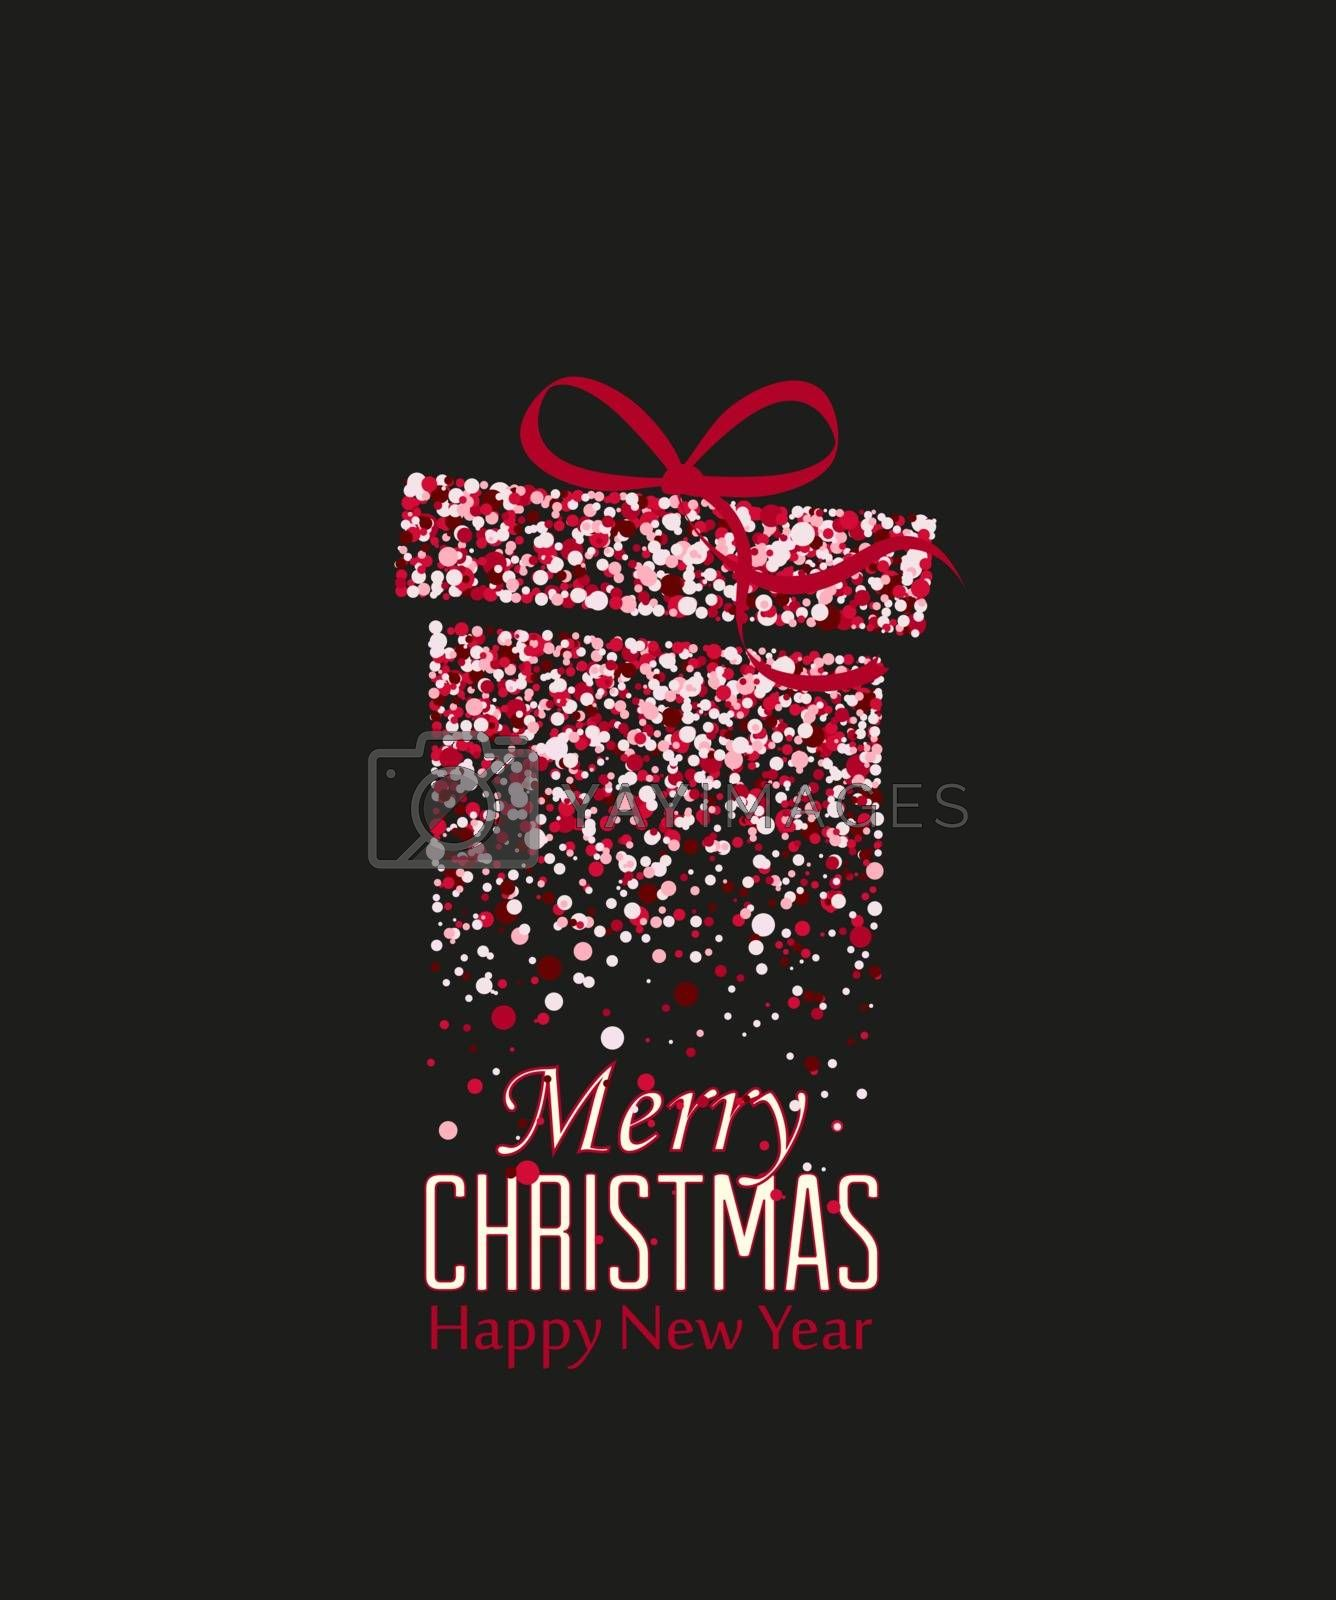 Vector illustration Christmas gift with dots. Merry Christmas card